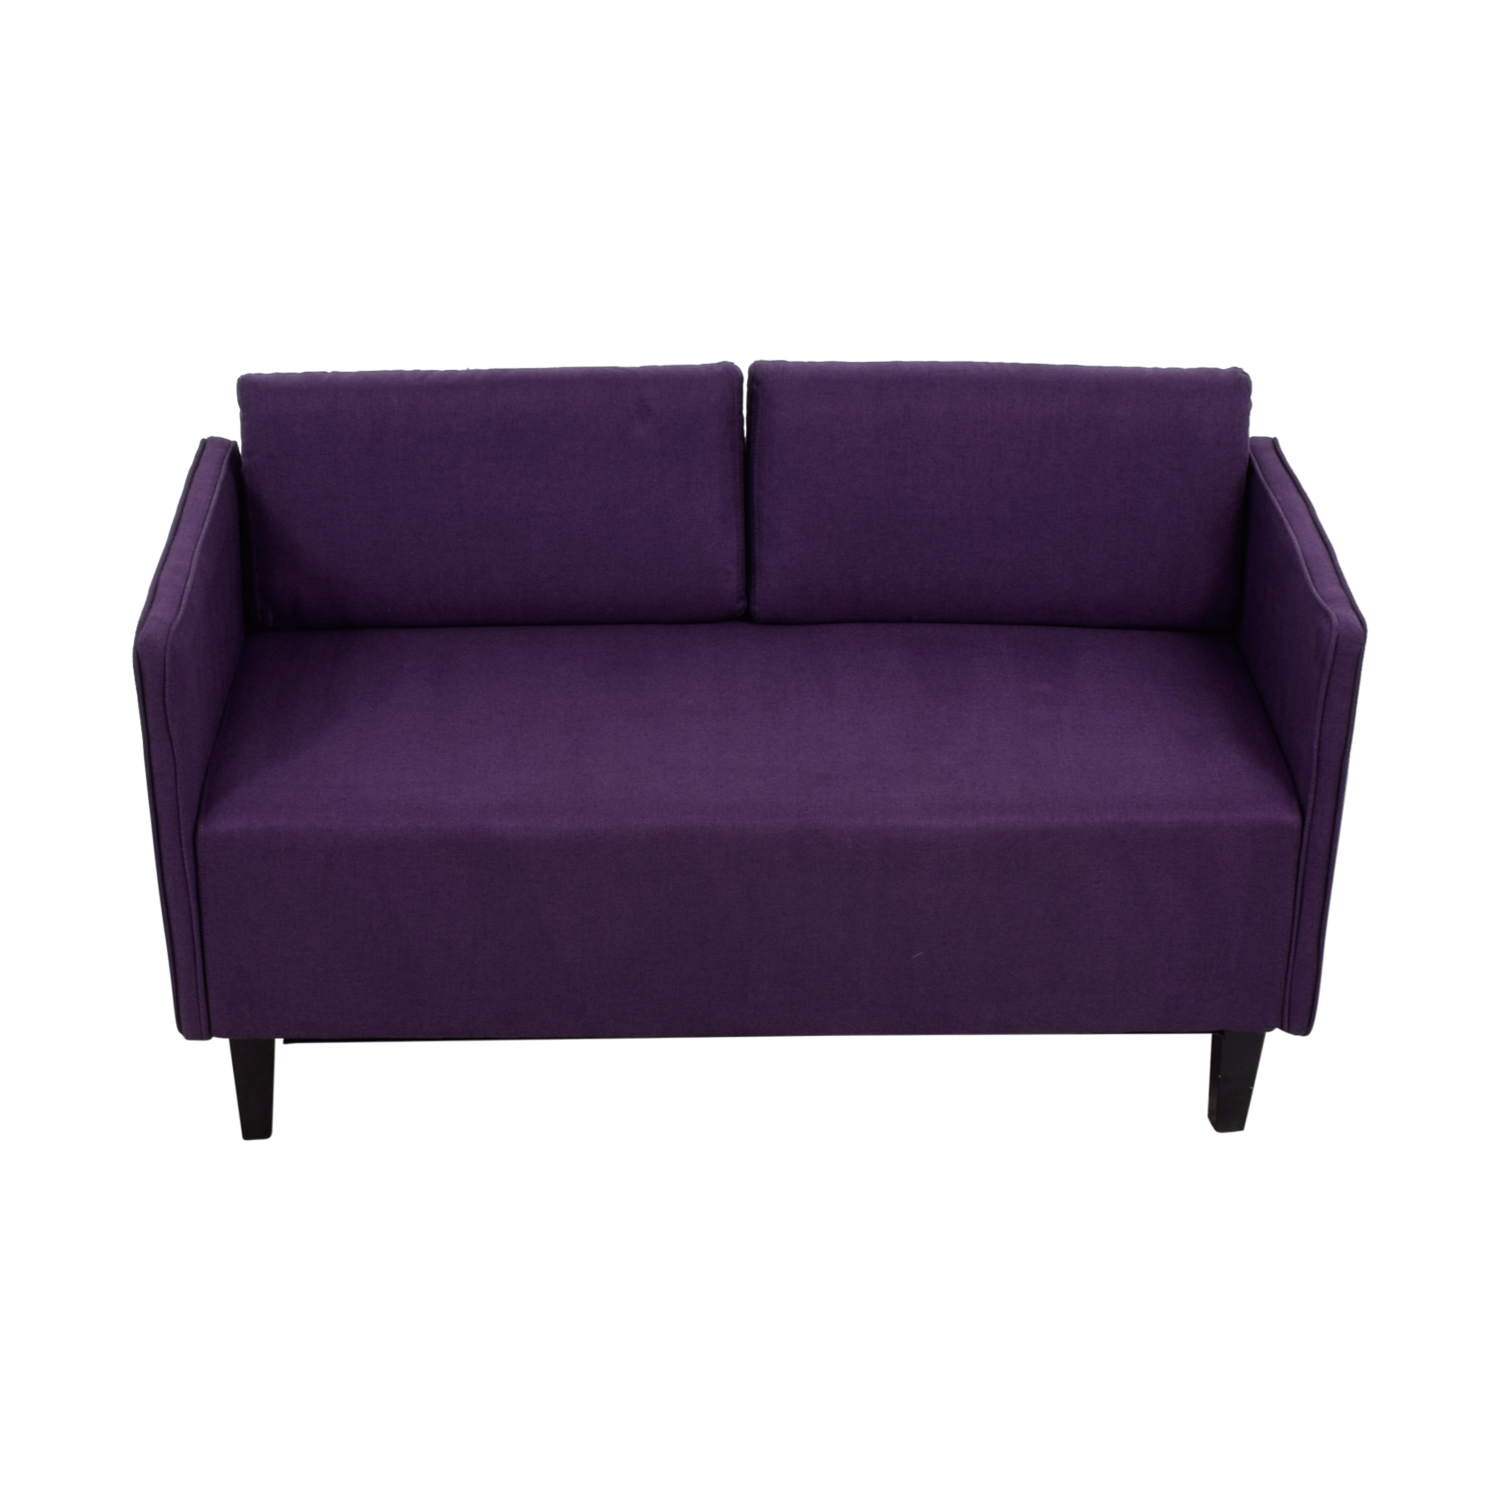 Ebern Designs Ebern Designs Dempsey Purple Herringbone Loveseat on sale